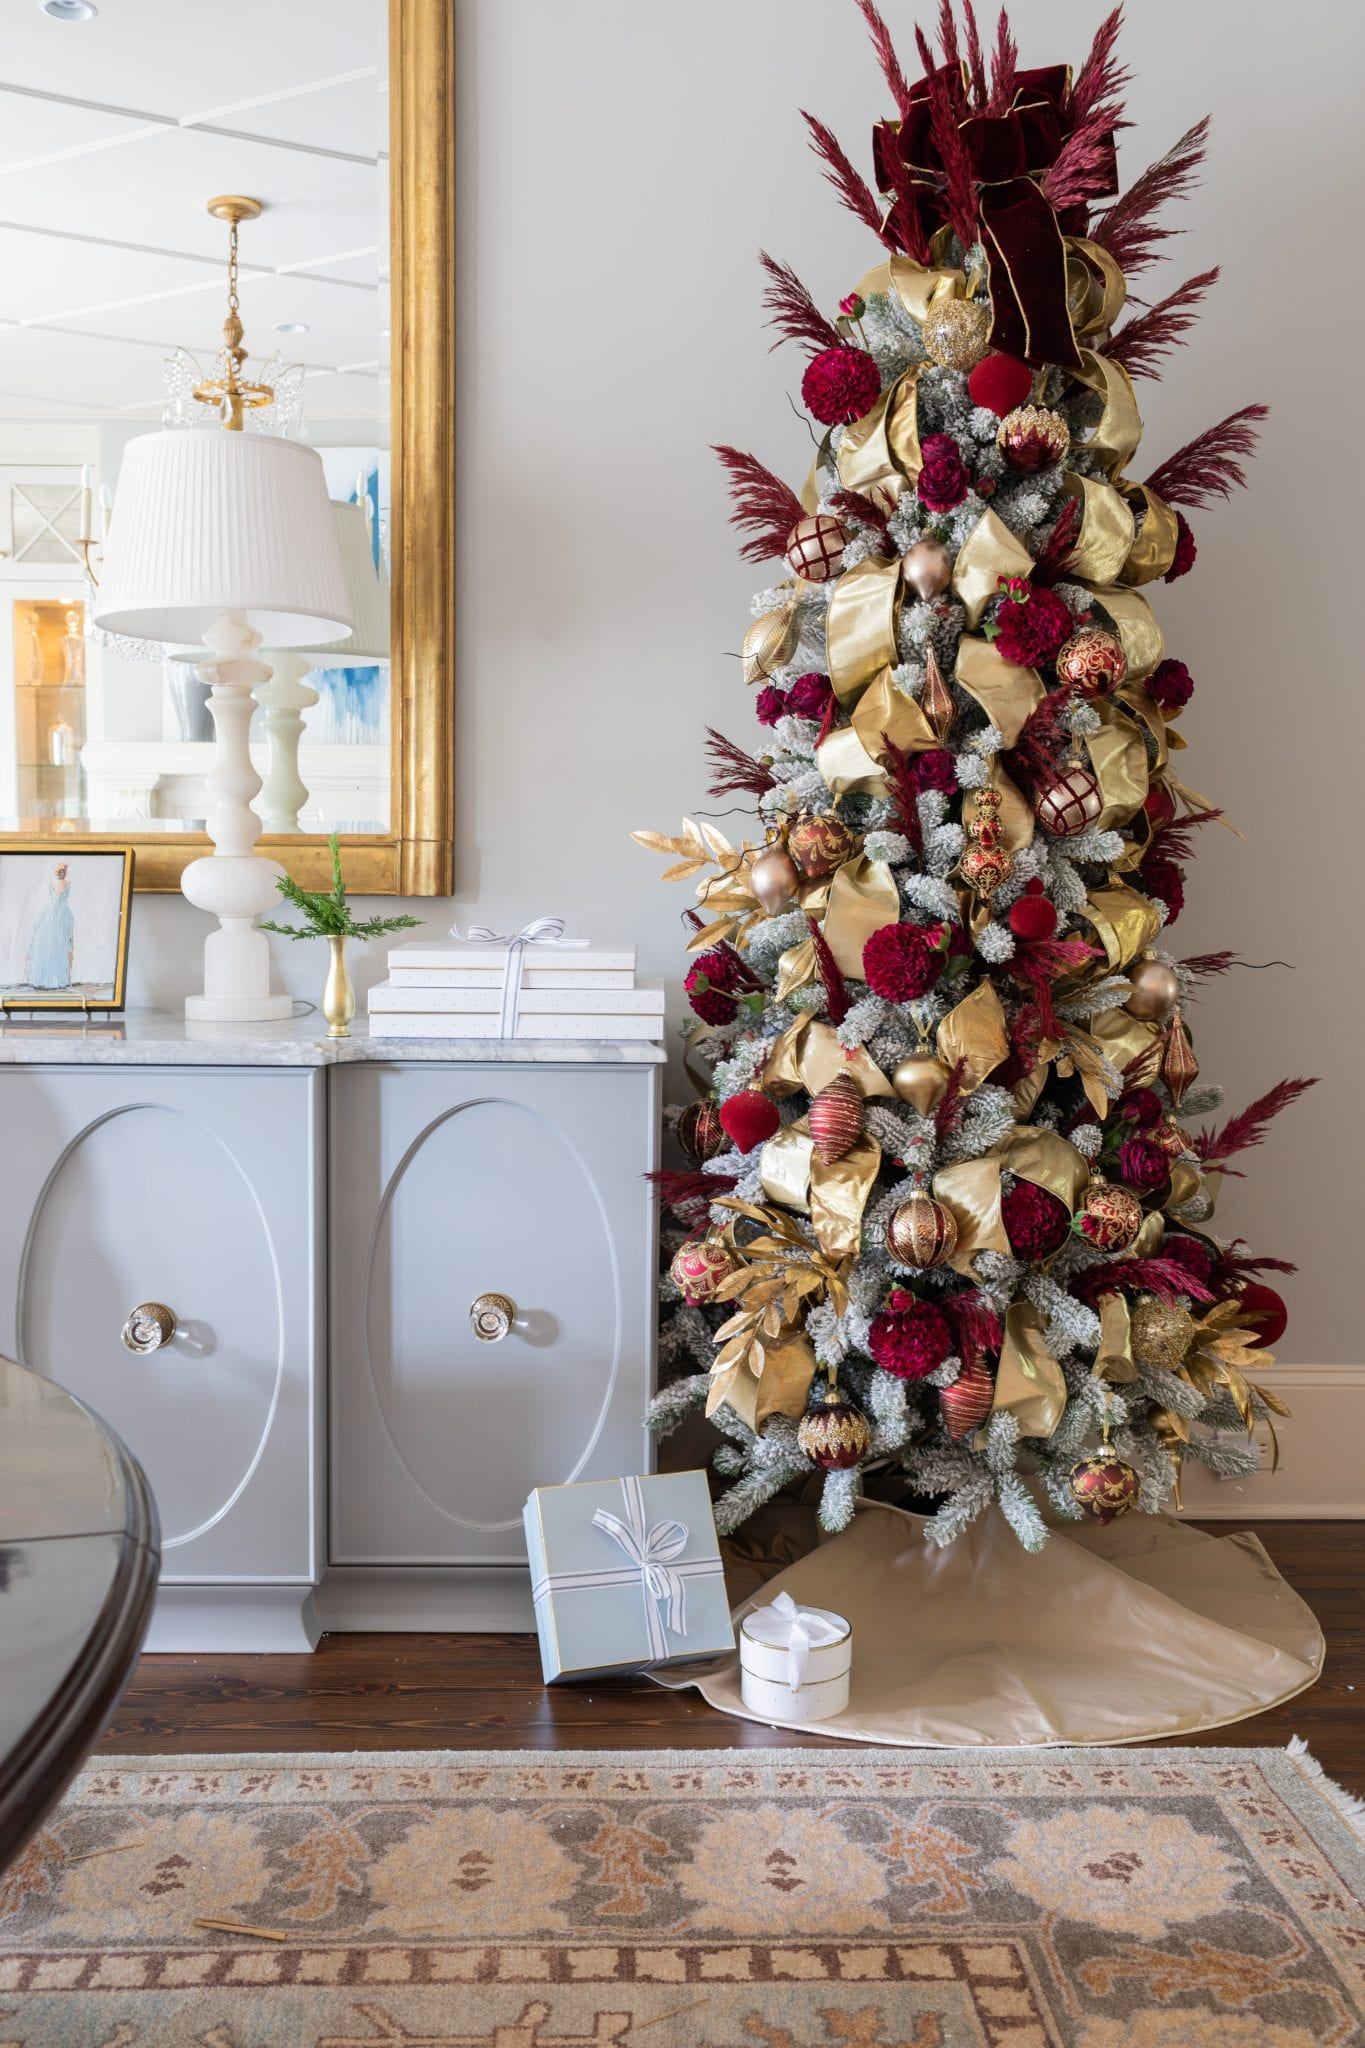 Decorating a white flocked Christmas tree and need some ideas? Flocked artificial Christmas trees give you so much room for new color ways & schemes! These flock Christmas tree ideas will inspire you to get a flocked tree this year and make your own mark on the holiday!